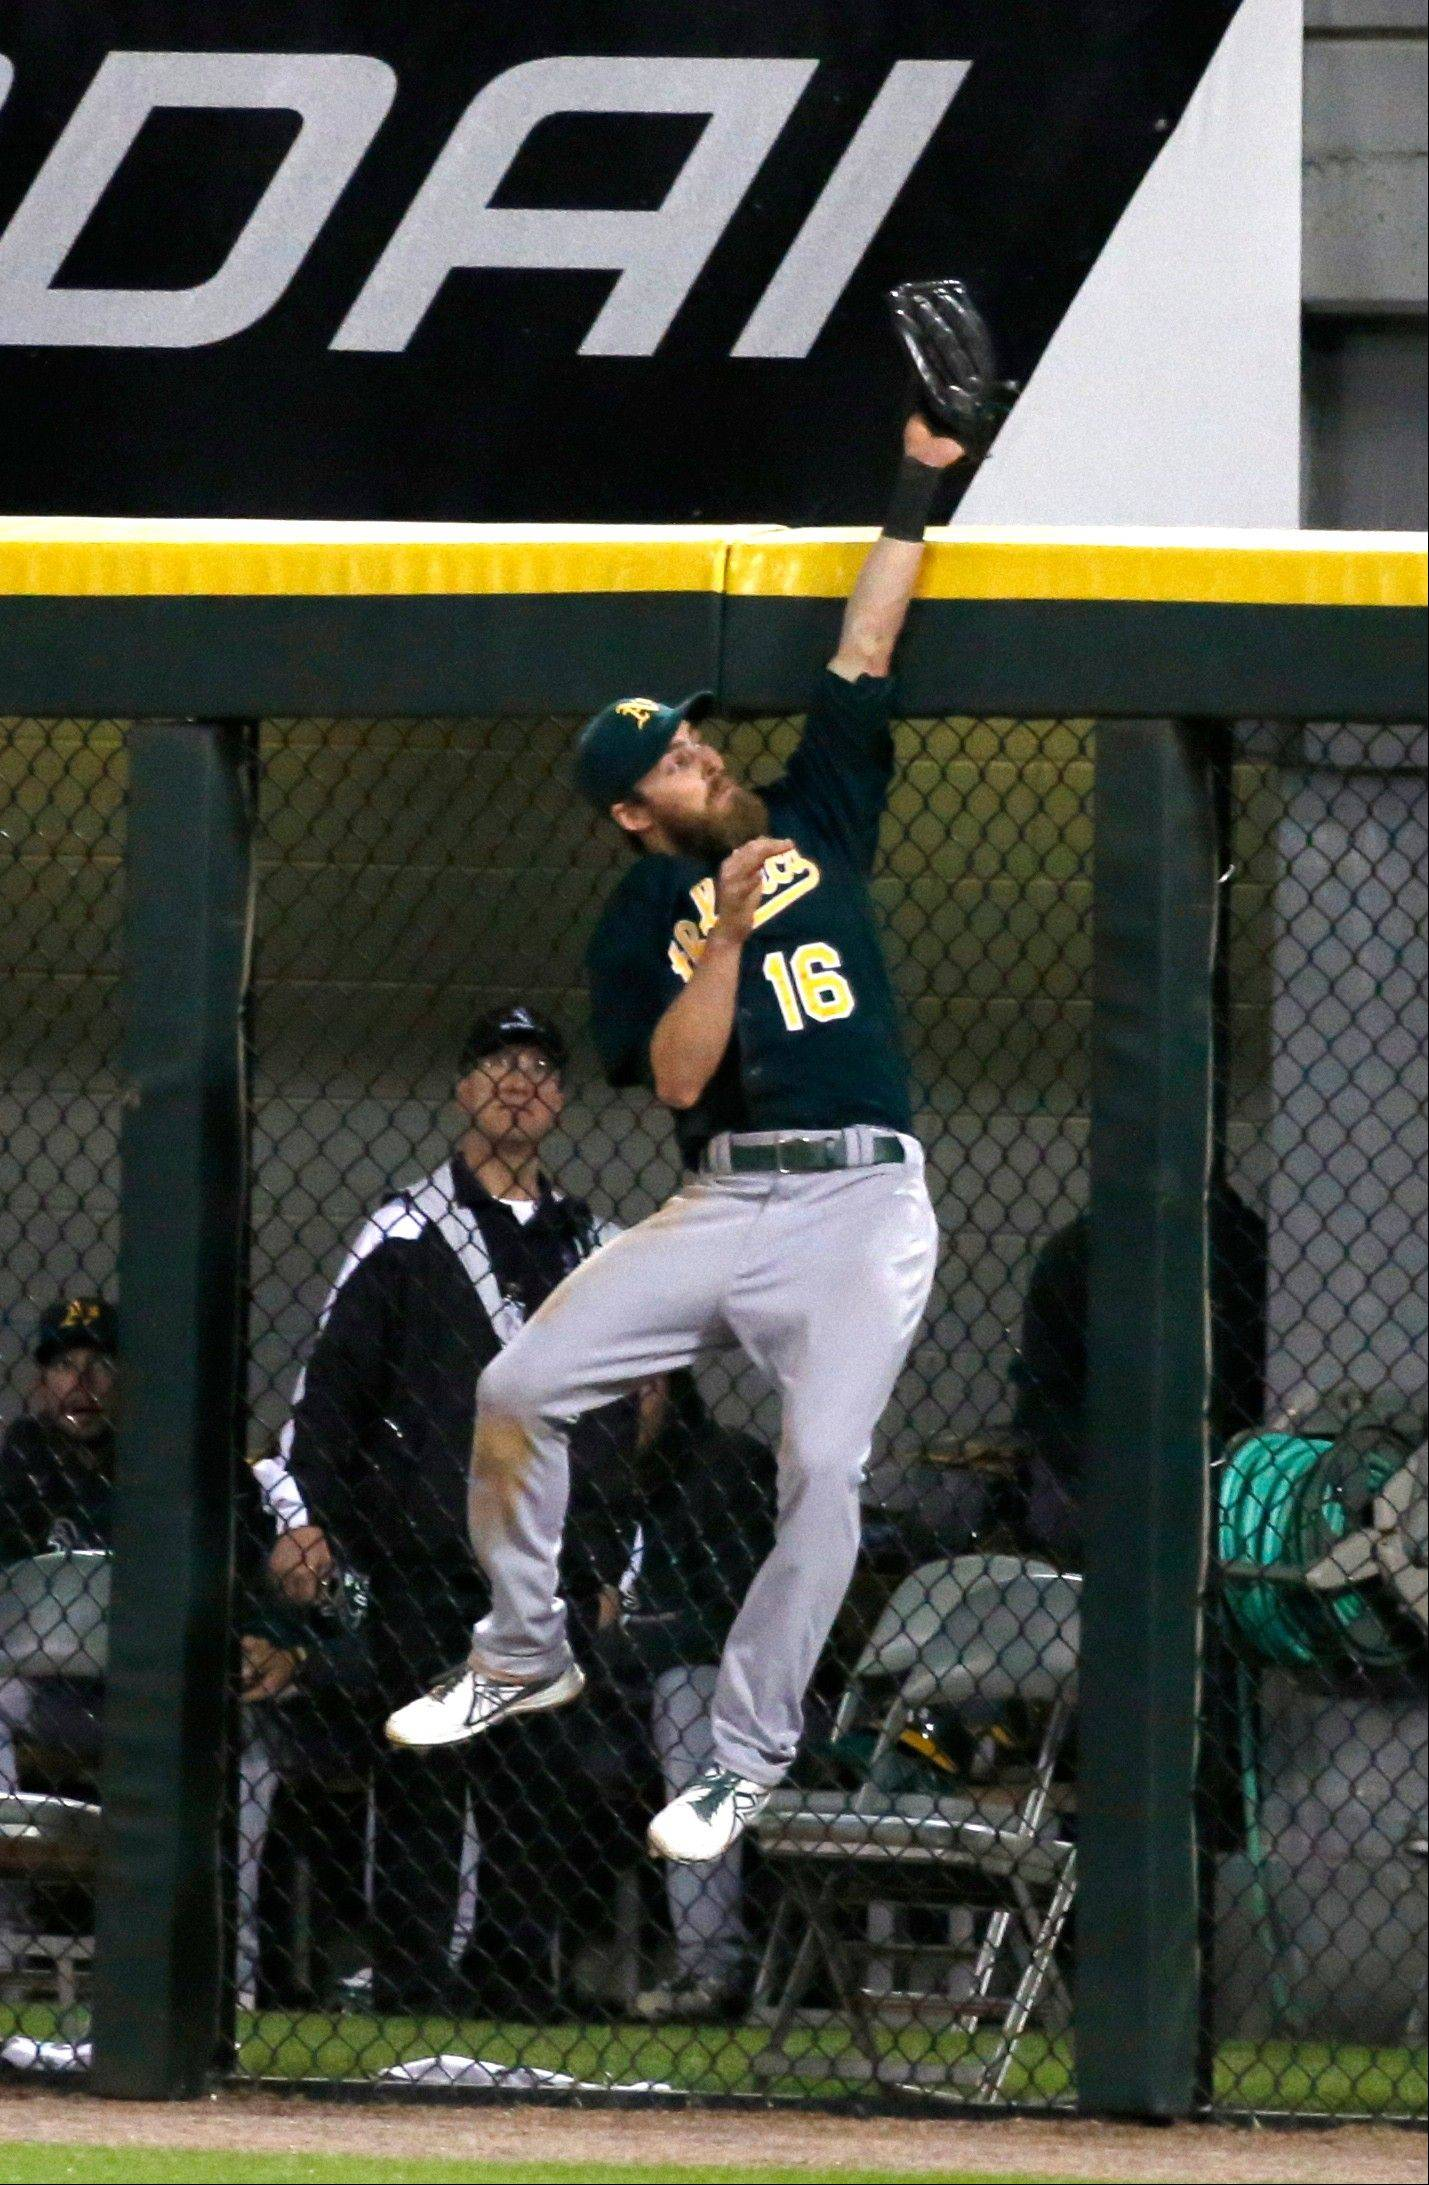 Athletics right fielder Josh Reddick makes a leaping catch of a drive by the White Sox' Conor Gillaspie that ended the game Friday at U.S. Cellular Field.